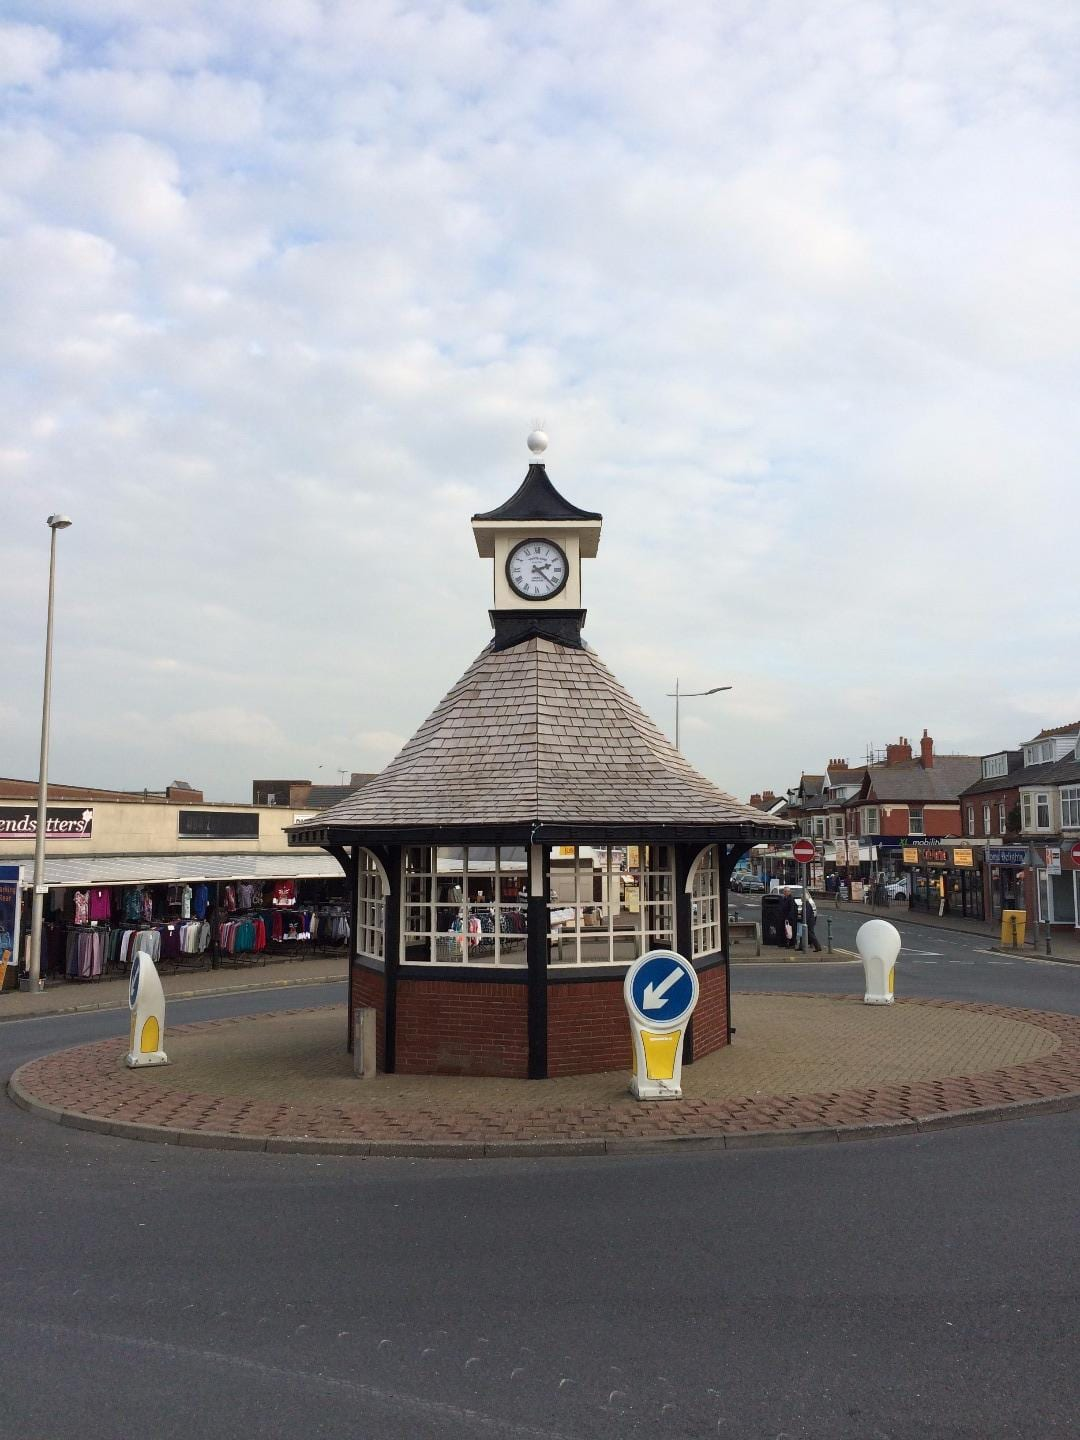 The clock shelter in Cleveleys. Restored and the clocks replaced in 2014. Where Care for Cleveleys began